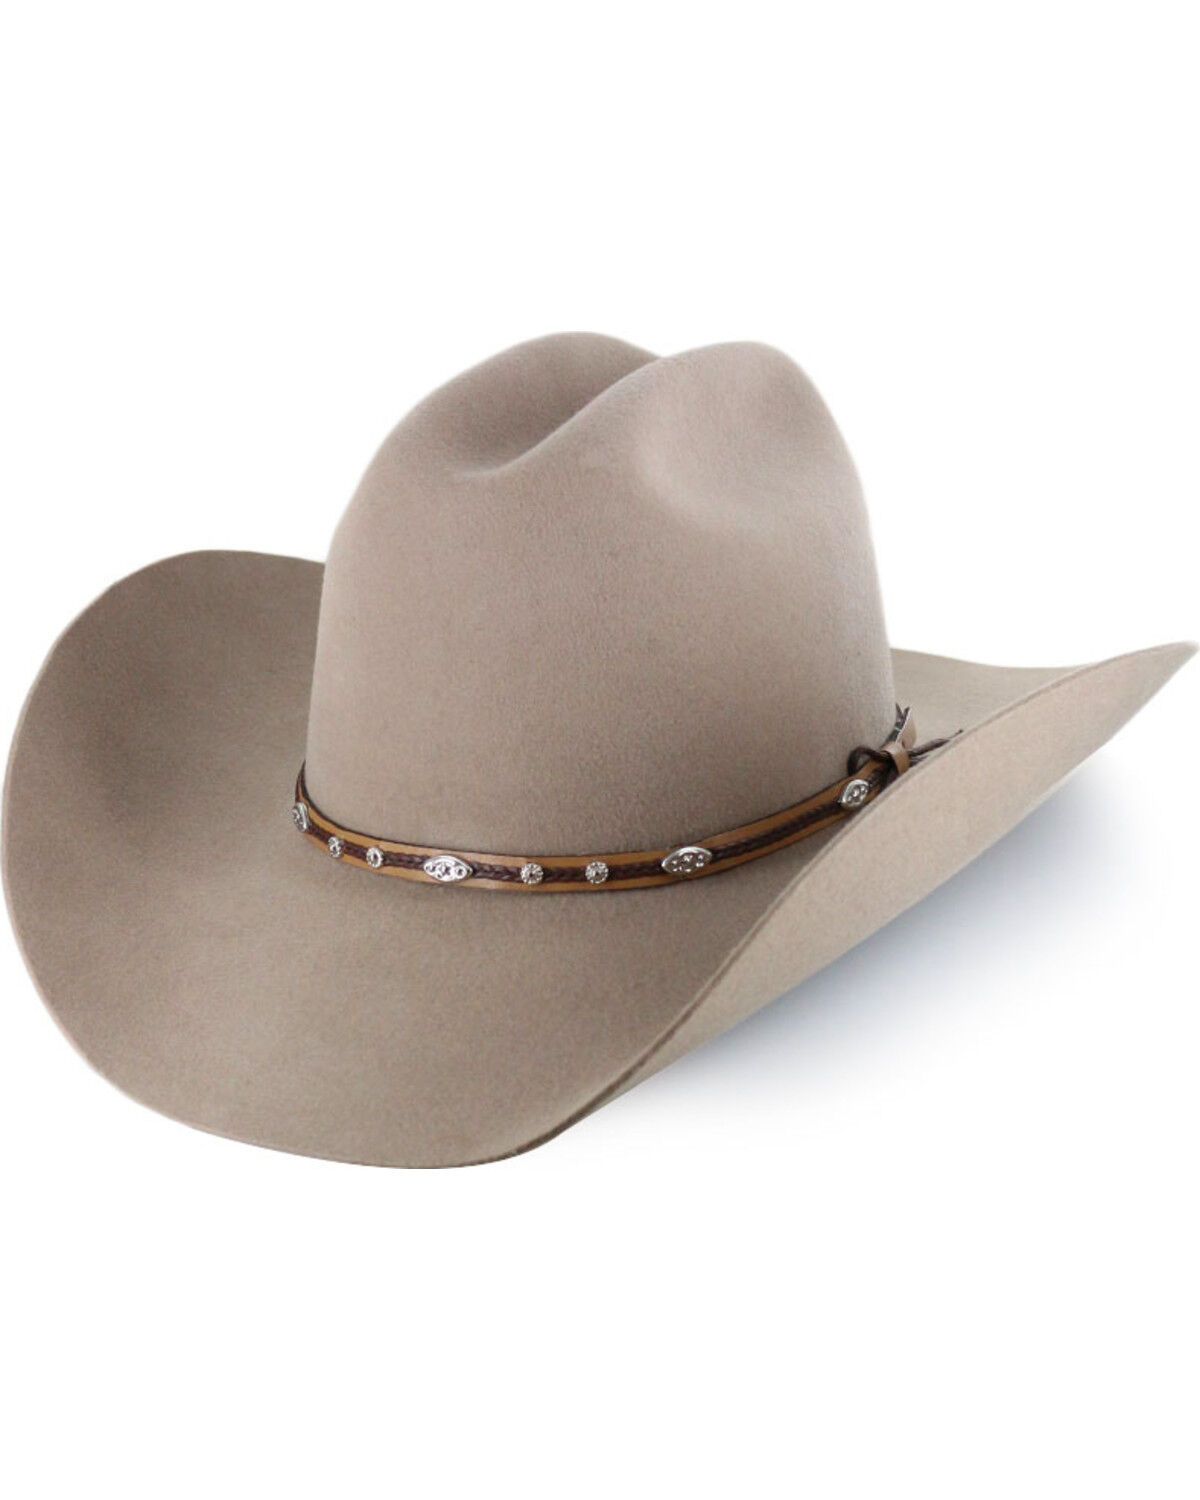 667272d4 Men's Fur Felt Western Hats